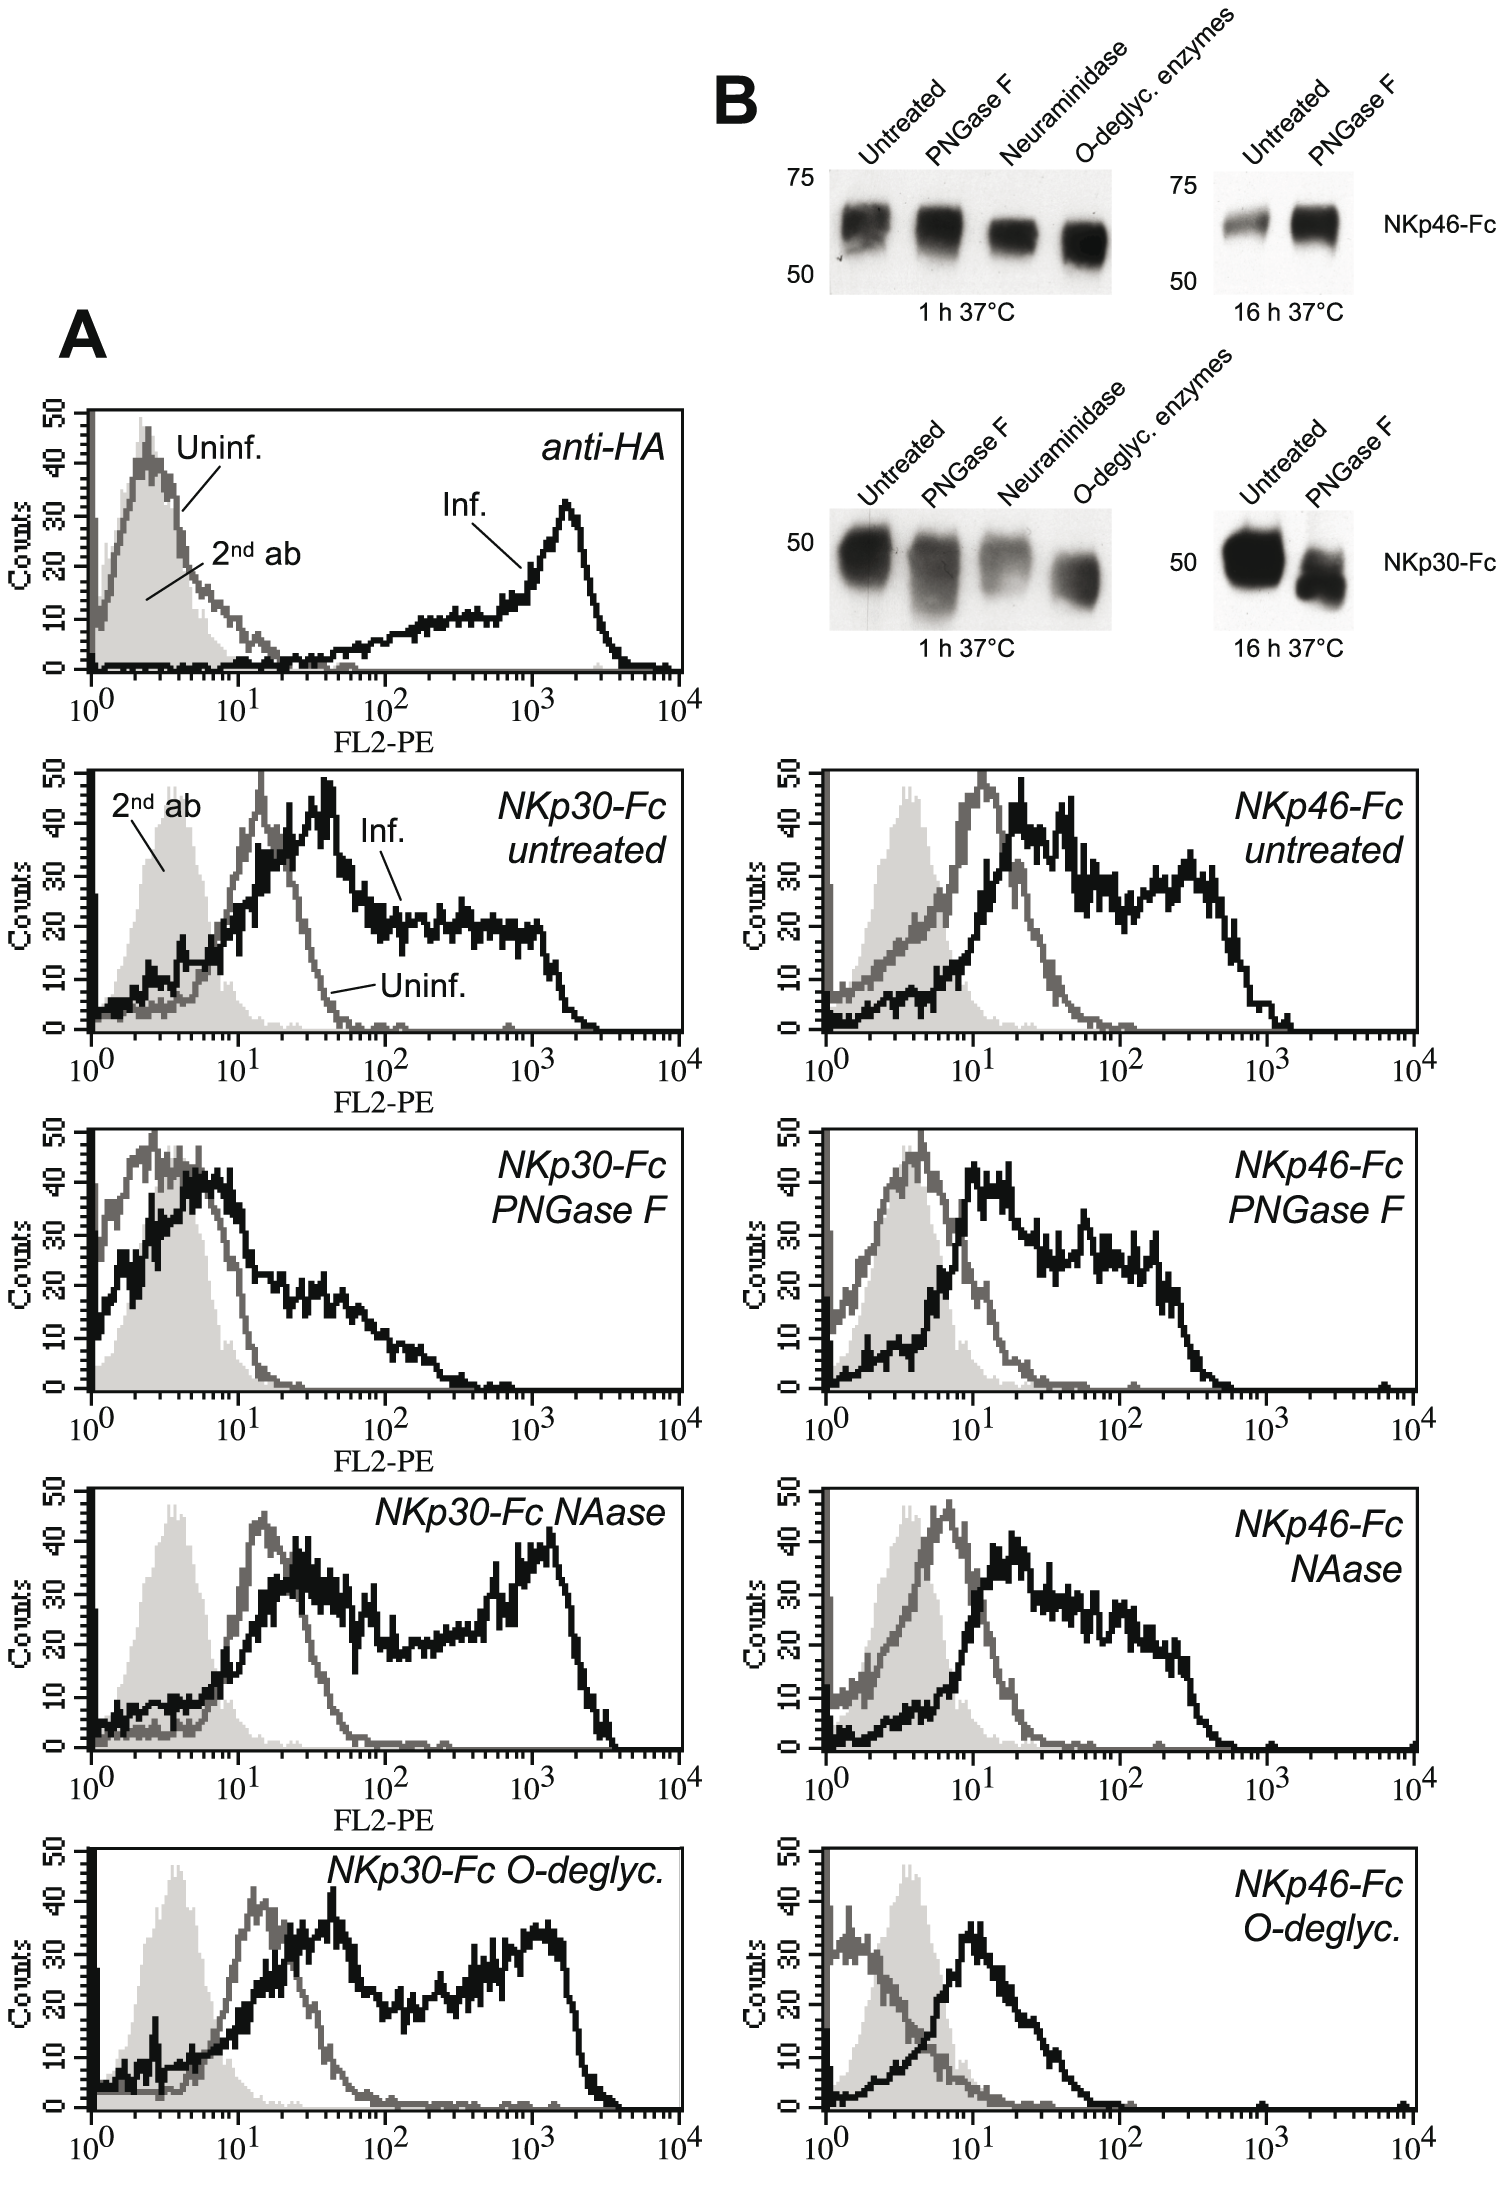 Deglycosylation differentially influences the binding of NKp30-Fc and NKp46-Fc.